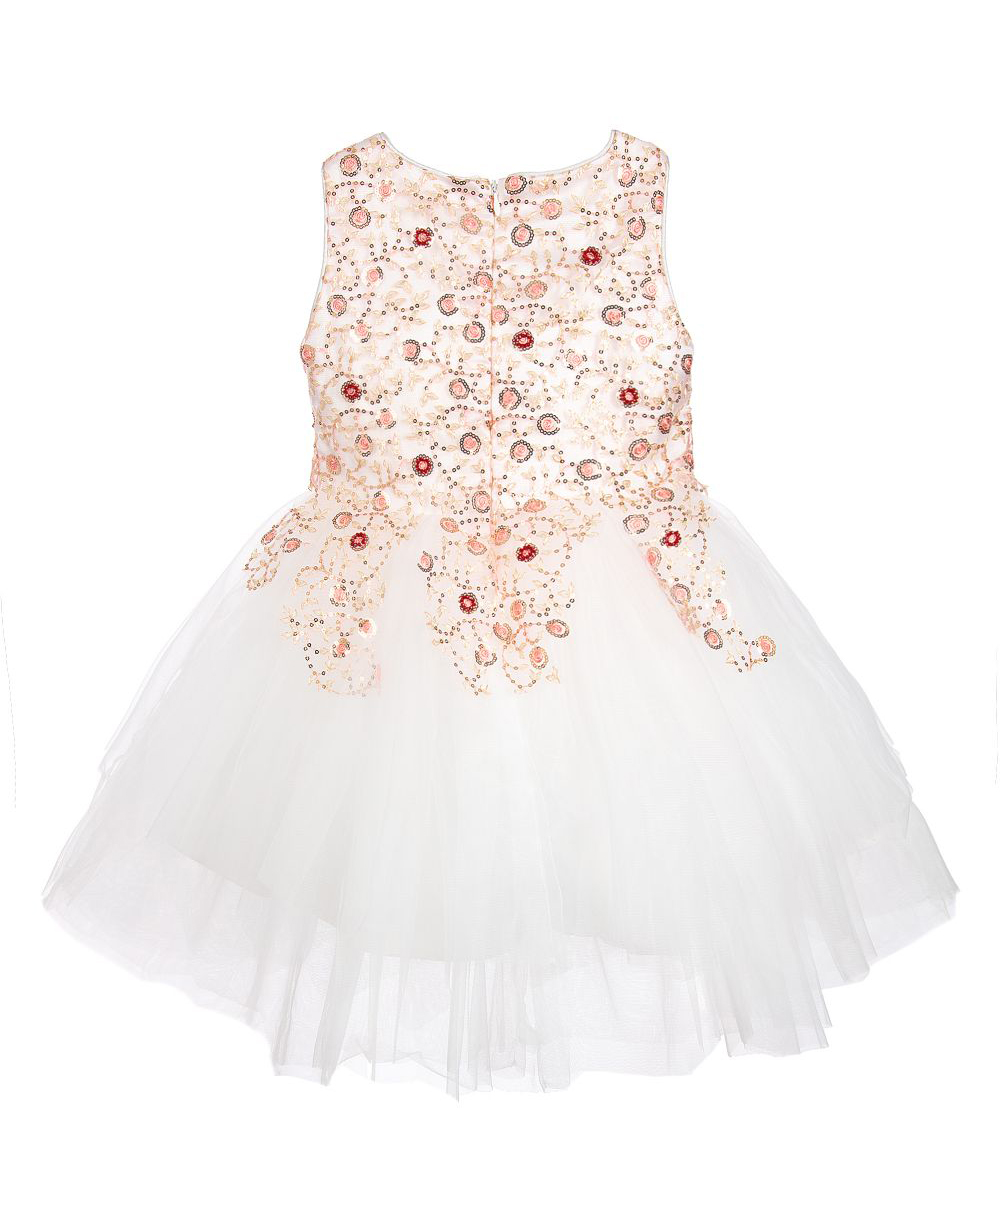 White Glitz Dress Ball Gown Embroidered Dress